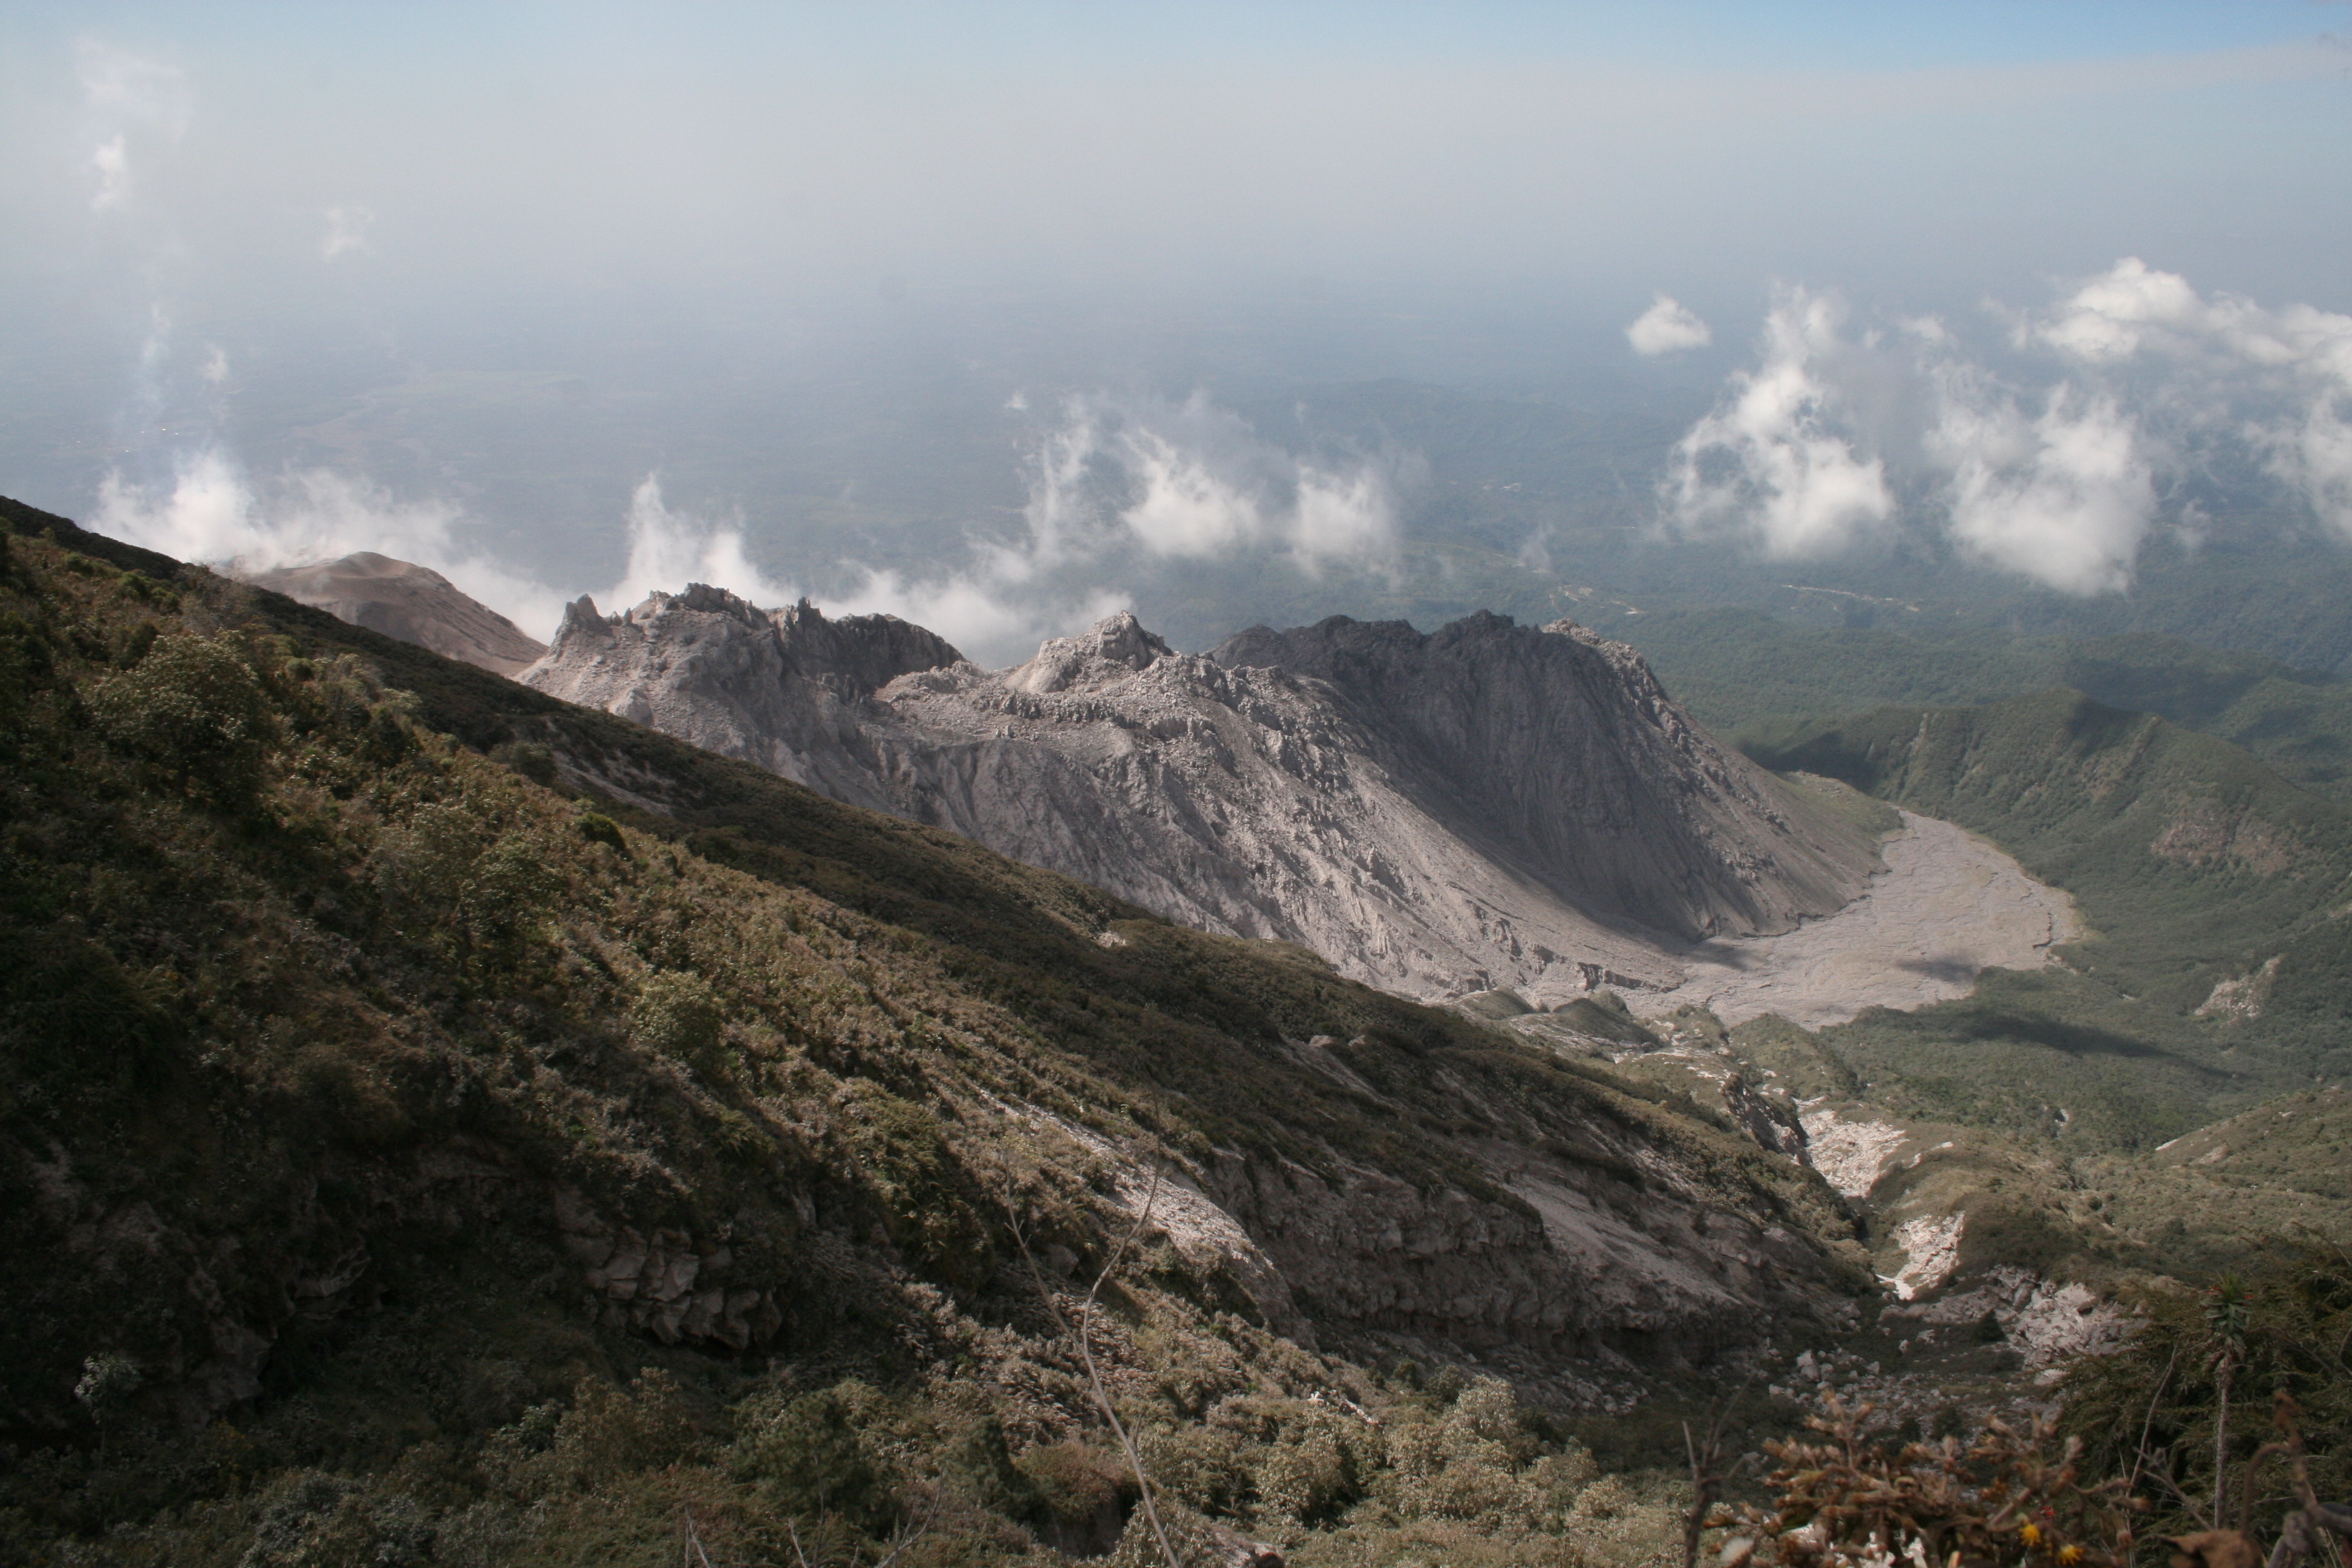 View of the lava domes of Santiaguito volcano, from the flanks of Santa Maria, Guatemala